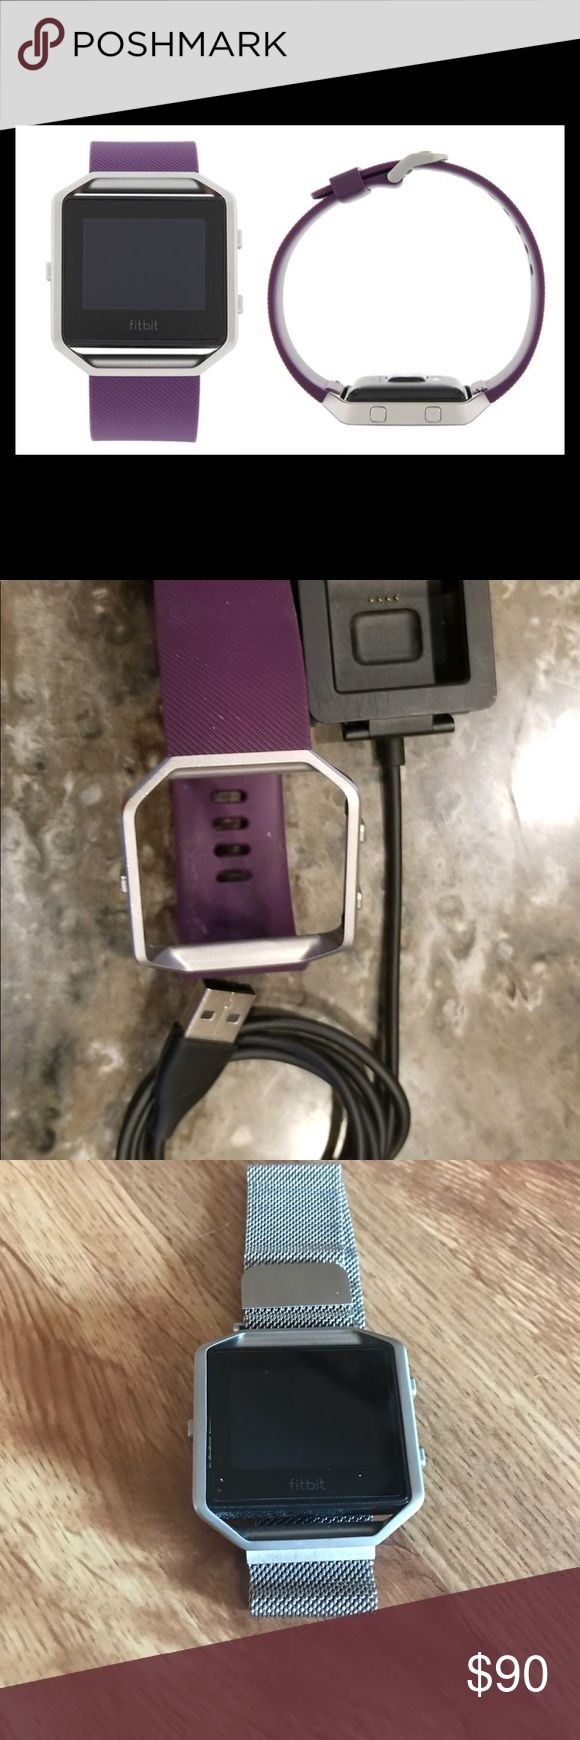 Fitbit Blaze Used but good condition! Comes with Large Plum colored band and magnetic silver band. Also comes with charging cable that has no wear or tear. **Has a Zagg screen protector** Feel free to make an offer. Please no unreasonable offers! Fitbit Jewelry